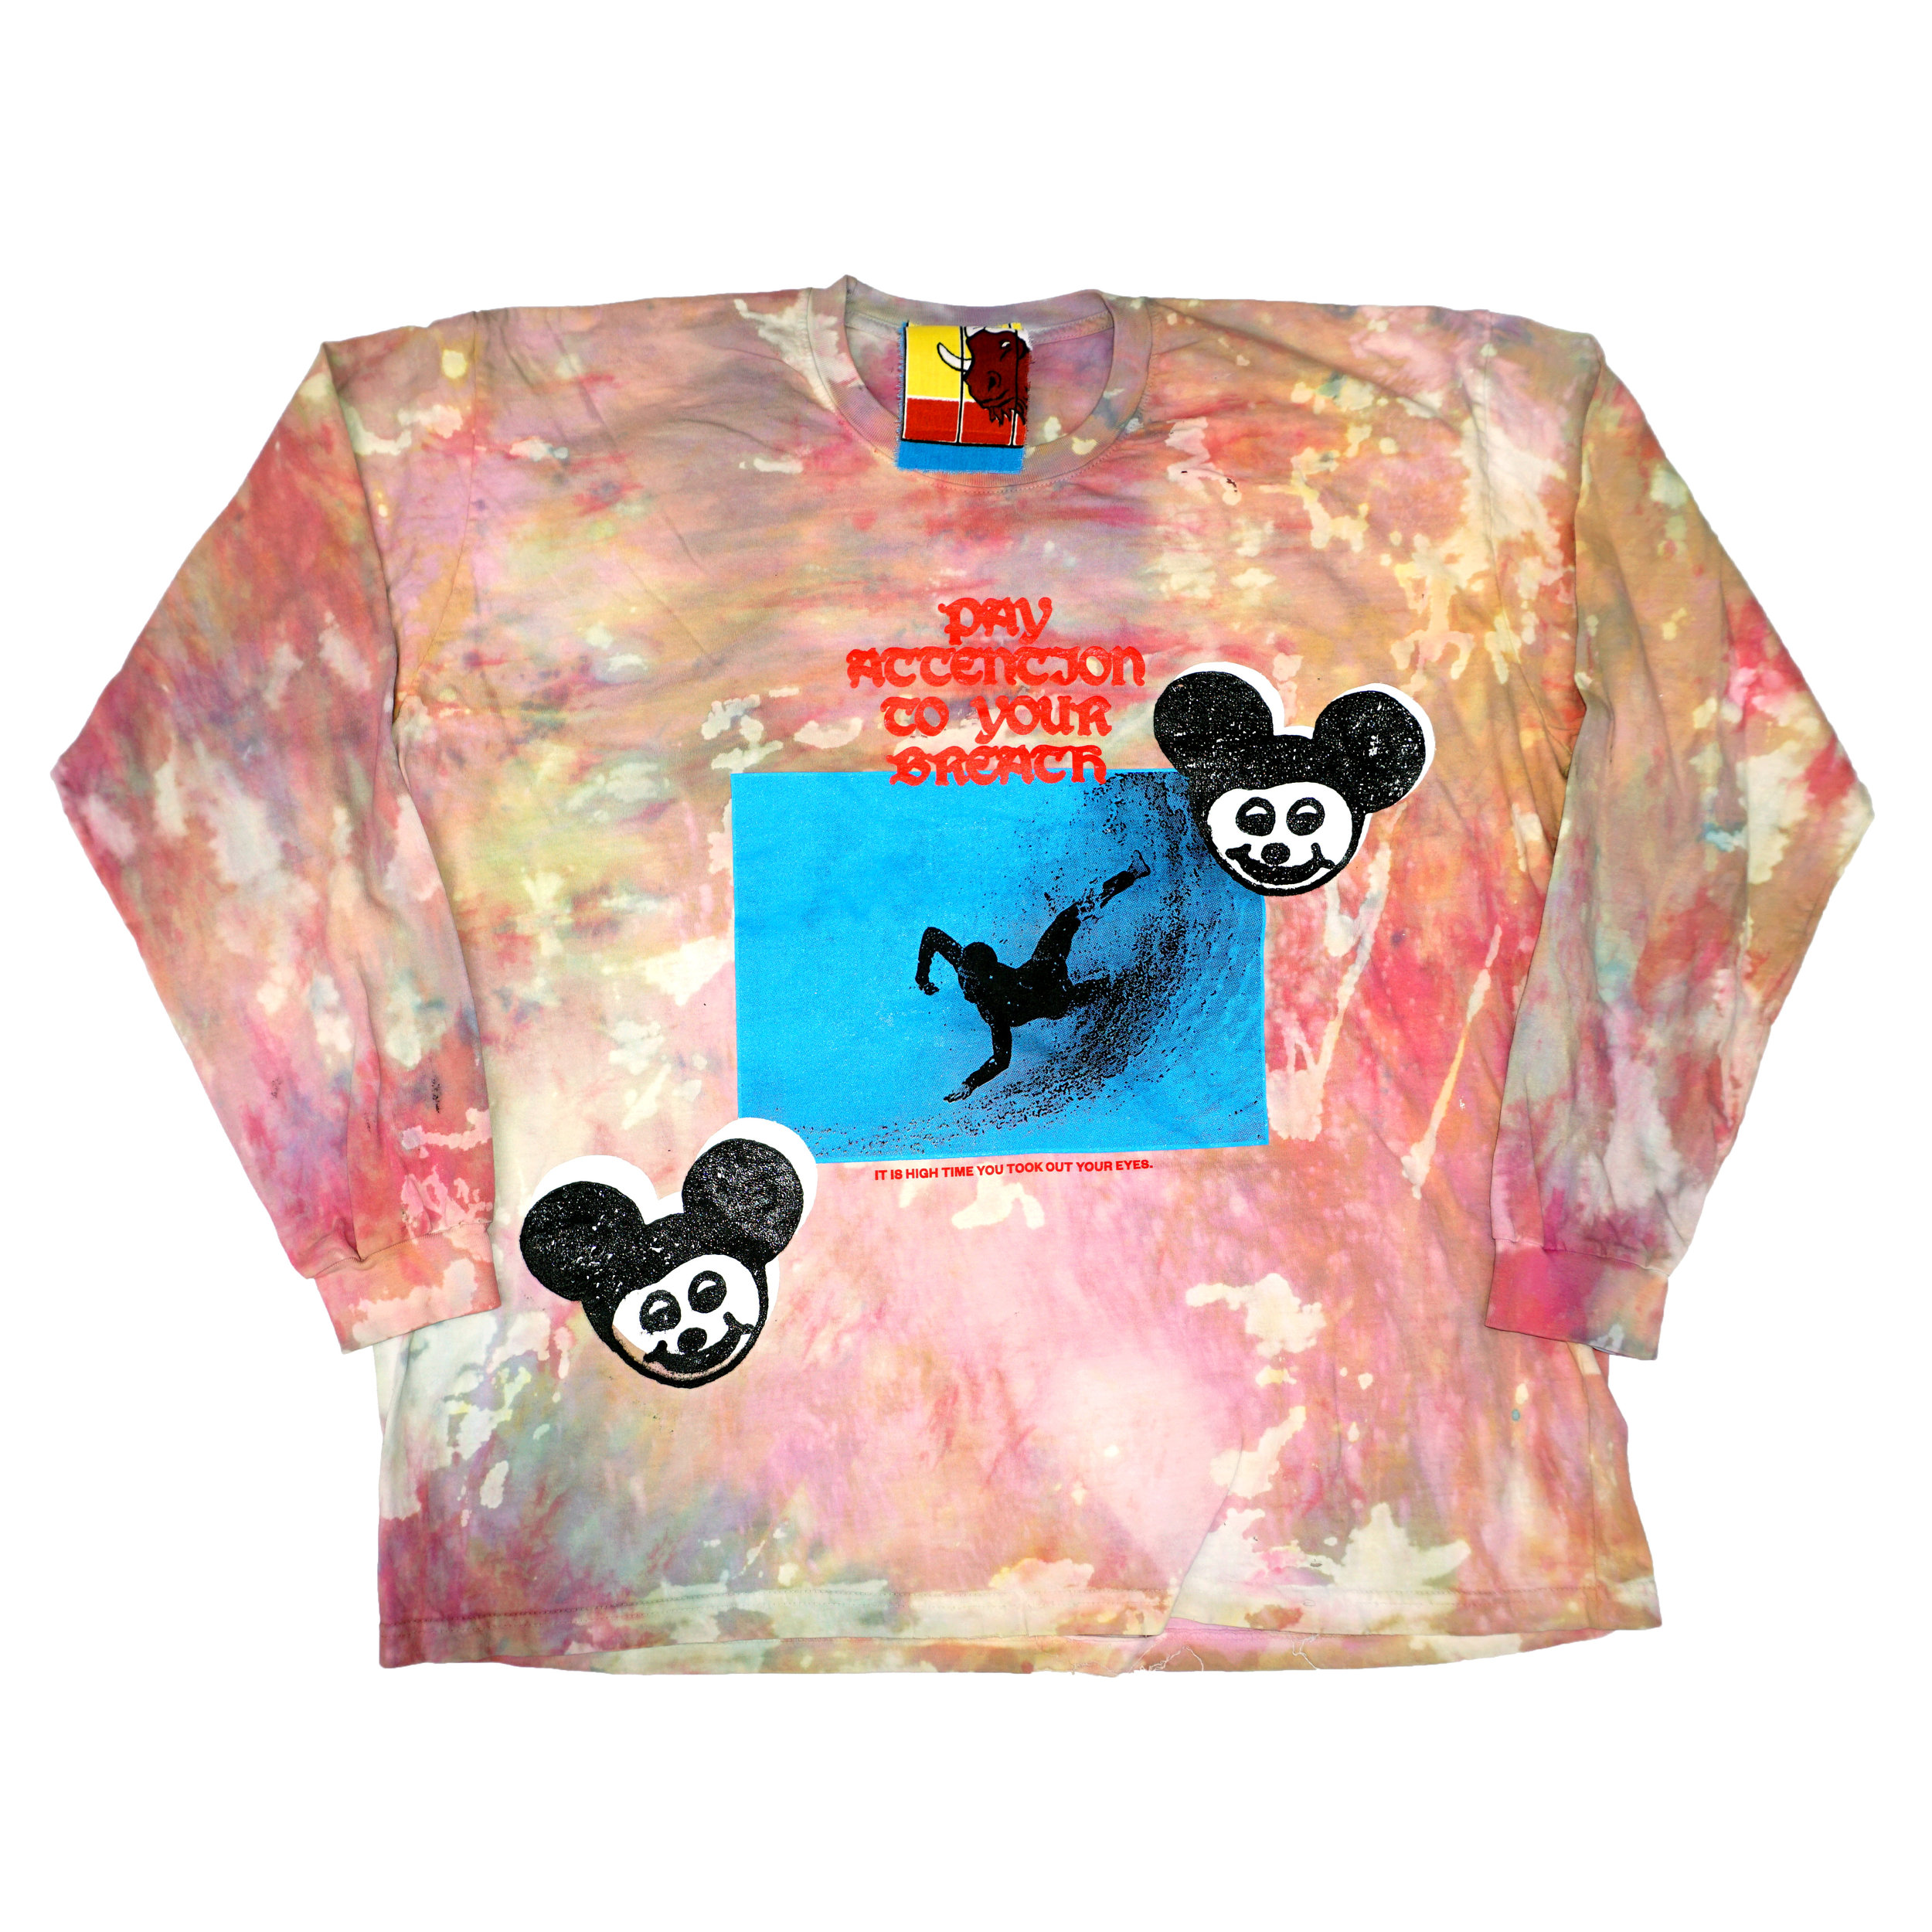 pay_attention_longsleeve_013_front_xxl_$70.jpg